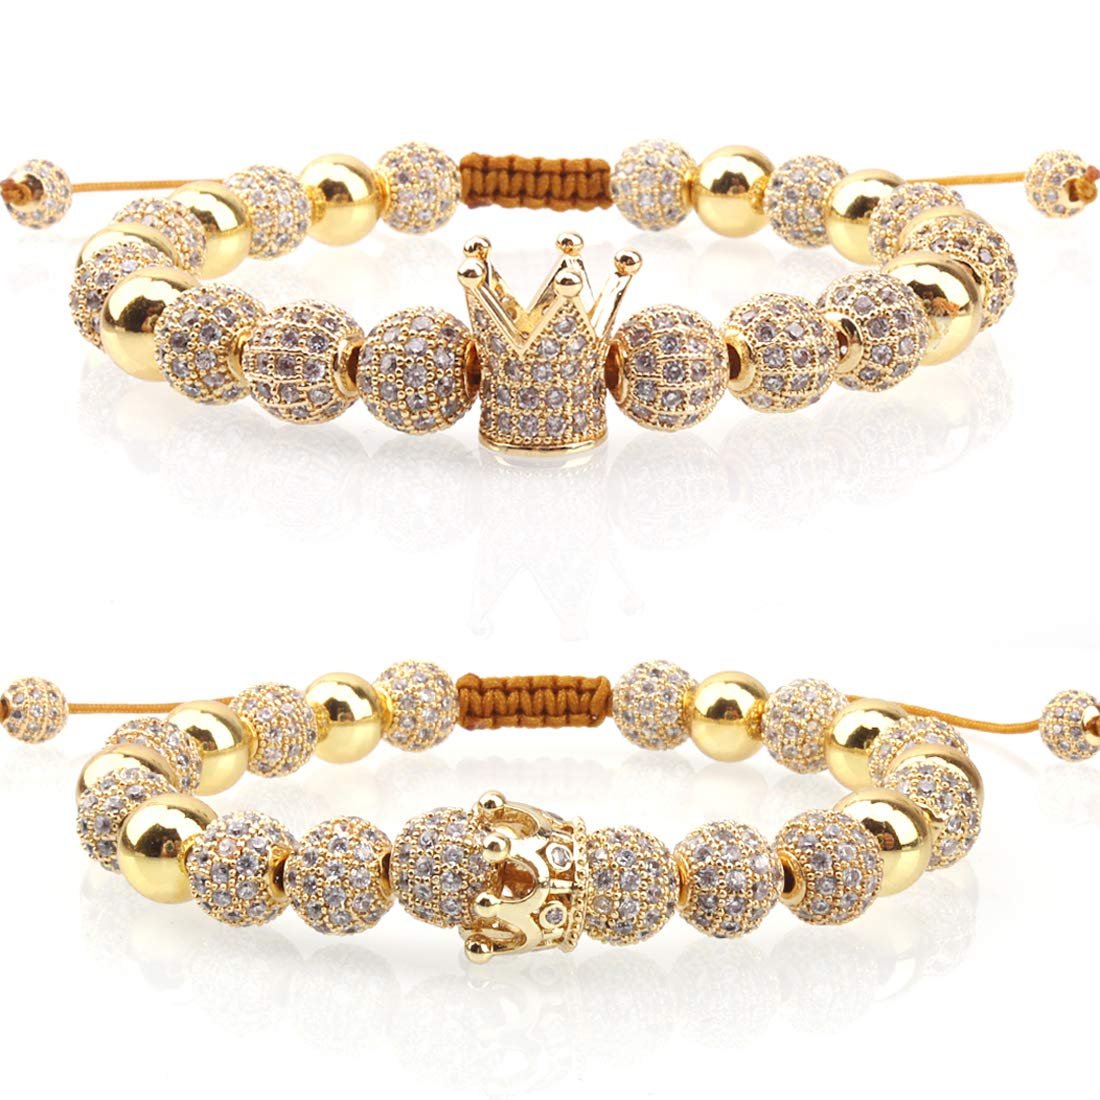 Massive Beads Luxury CZ Imperial Crown Braided Copper Bracelets with 8mm Micro Pave Cubic Zirconia Beads Pulseira Bangle Charm Jewelry